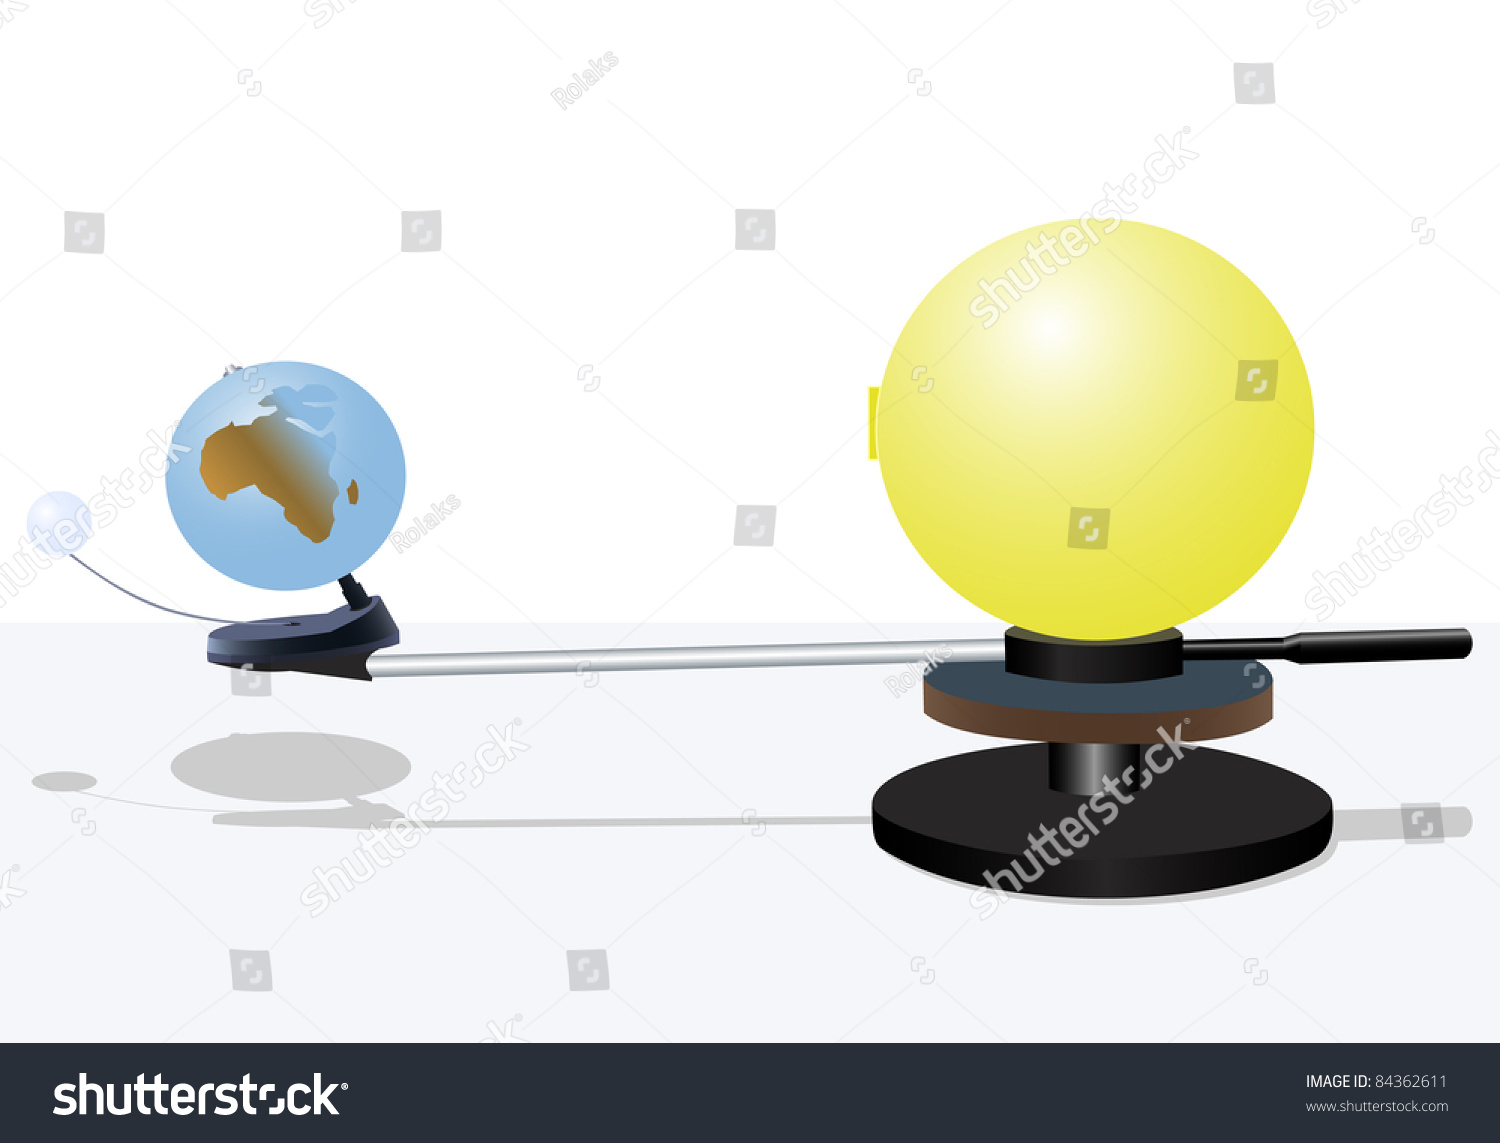 Illustration Of Model Of The Sun And The Earth With The